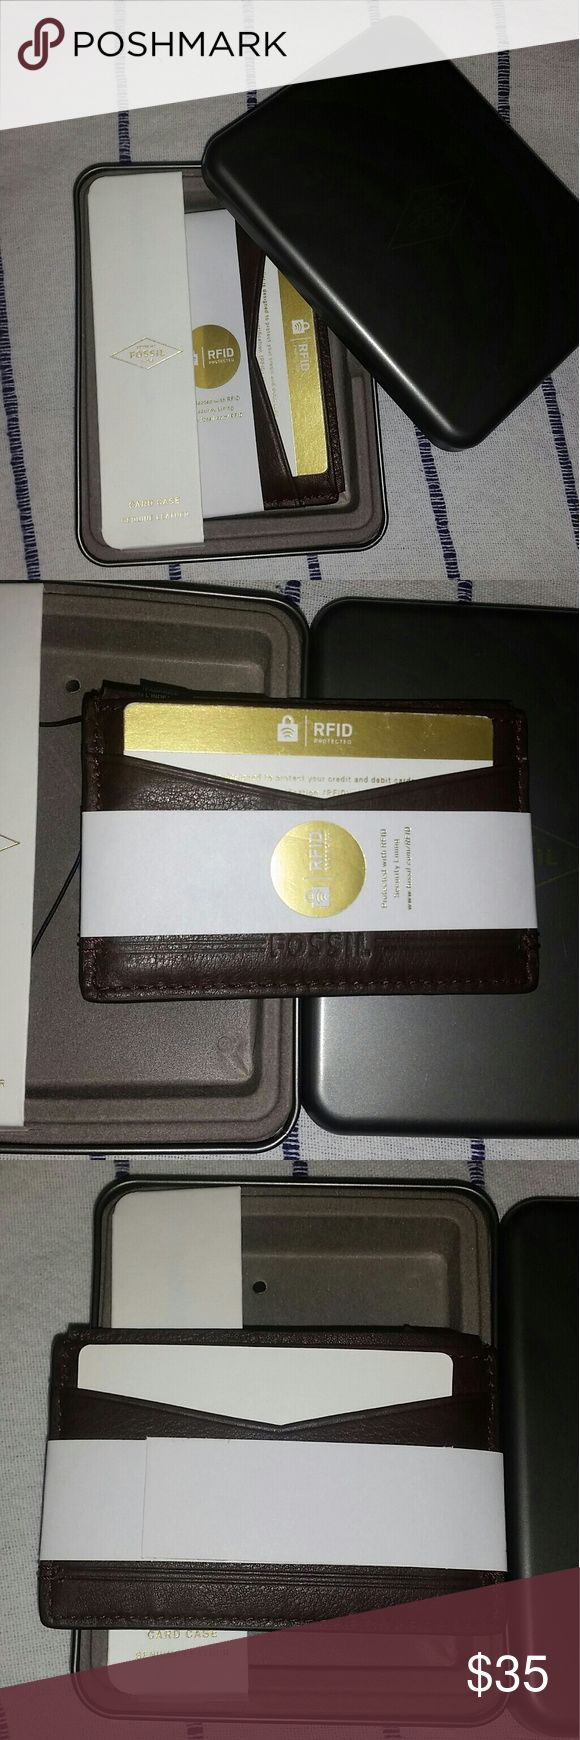 SALE🎉Brown Fossil RFID Card Holder PRICE FIRM/Brooks Card Case RFID in Dark Brown. This wallet in new and in perfect condition & comes in its metal box!  Perfect for the Holidays!  RFID: Radio-frequency identification (RFID) uses electromagnetic fields to automatically identify and track tags attached to objects. The tags contain electronically stored information. Passive tags collect energy from a nearby RFID reader's interrogating radio waves Fossil Accessories Key & Card Holders